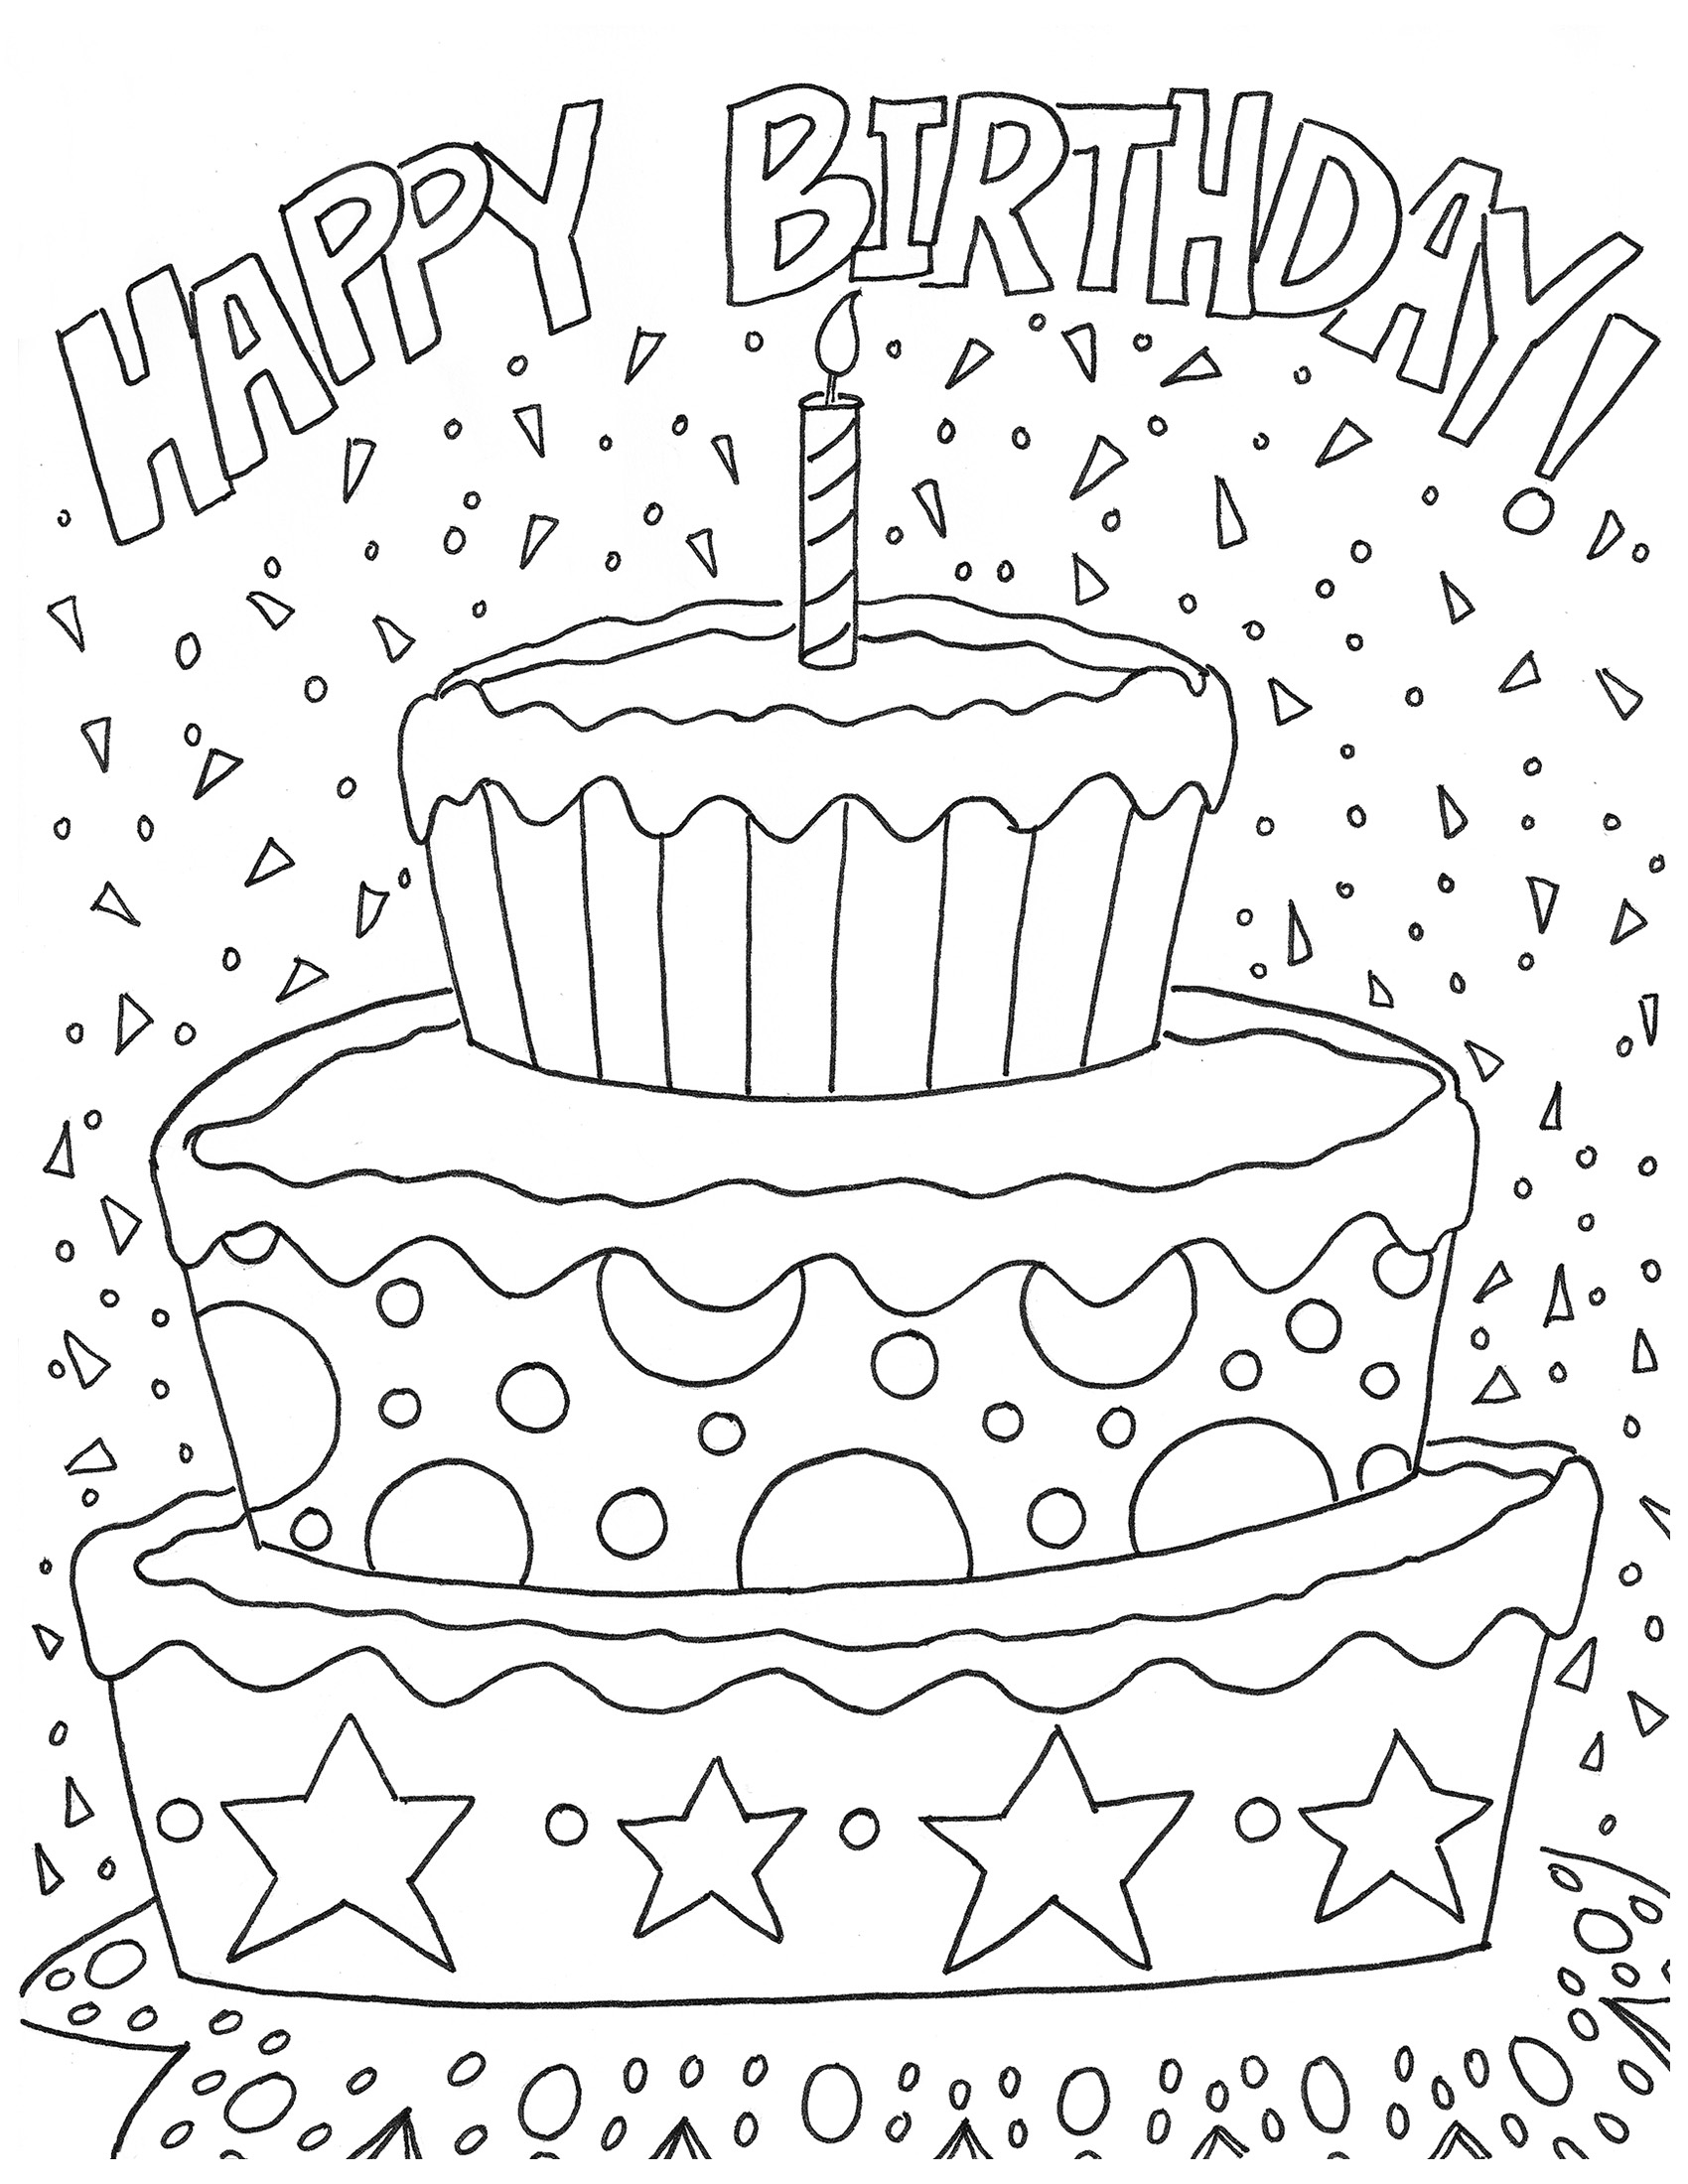 coloring printable birthday cards free free printable happy birthday coloring pages for kids cards birthday free coloring printable